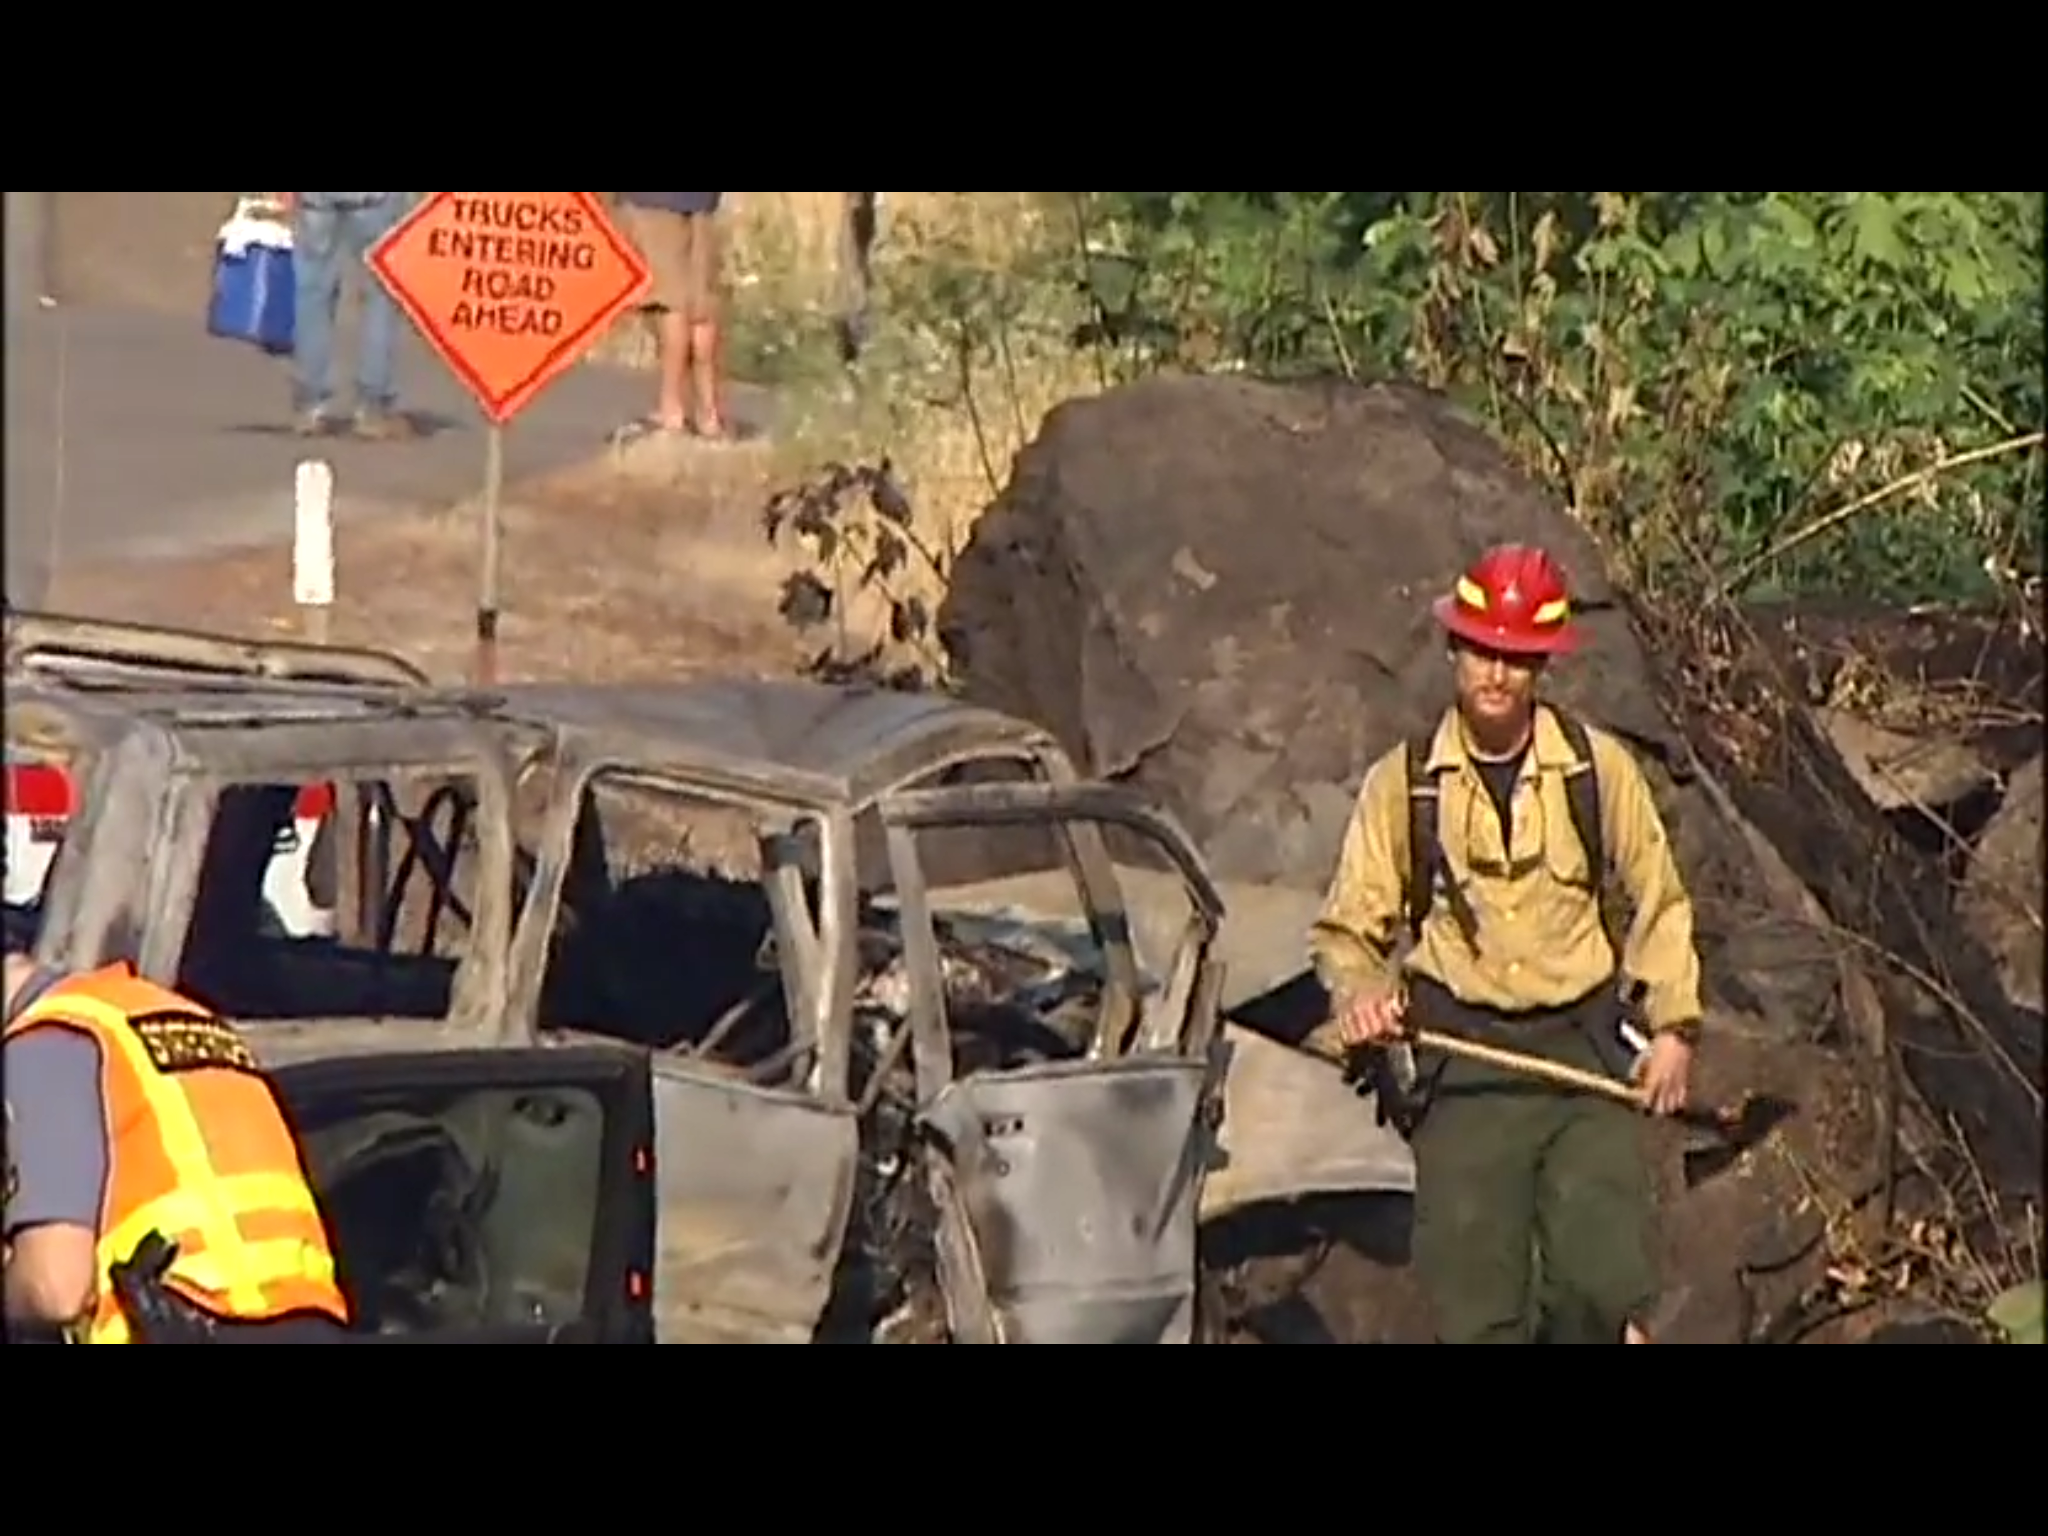 An SUV that went off the highway and hit a boulder was engulfed in flames by the time firefighters arrived on scene Wednesday, Oregon State Police said.  The driver of the 2001 Ford Explorer died in the crash and fire. (SBG)